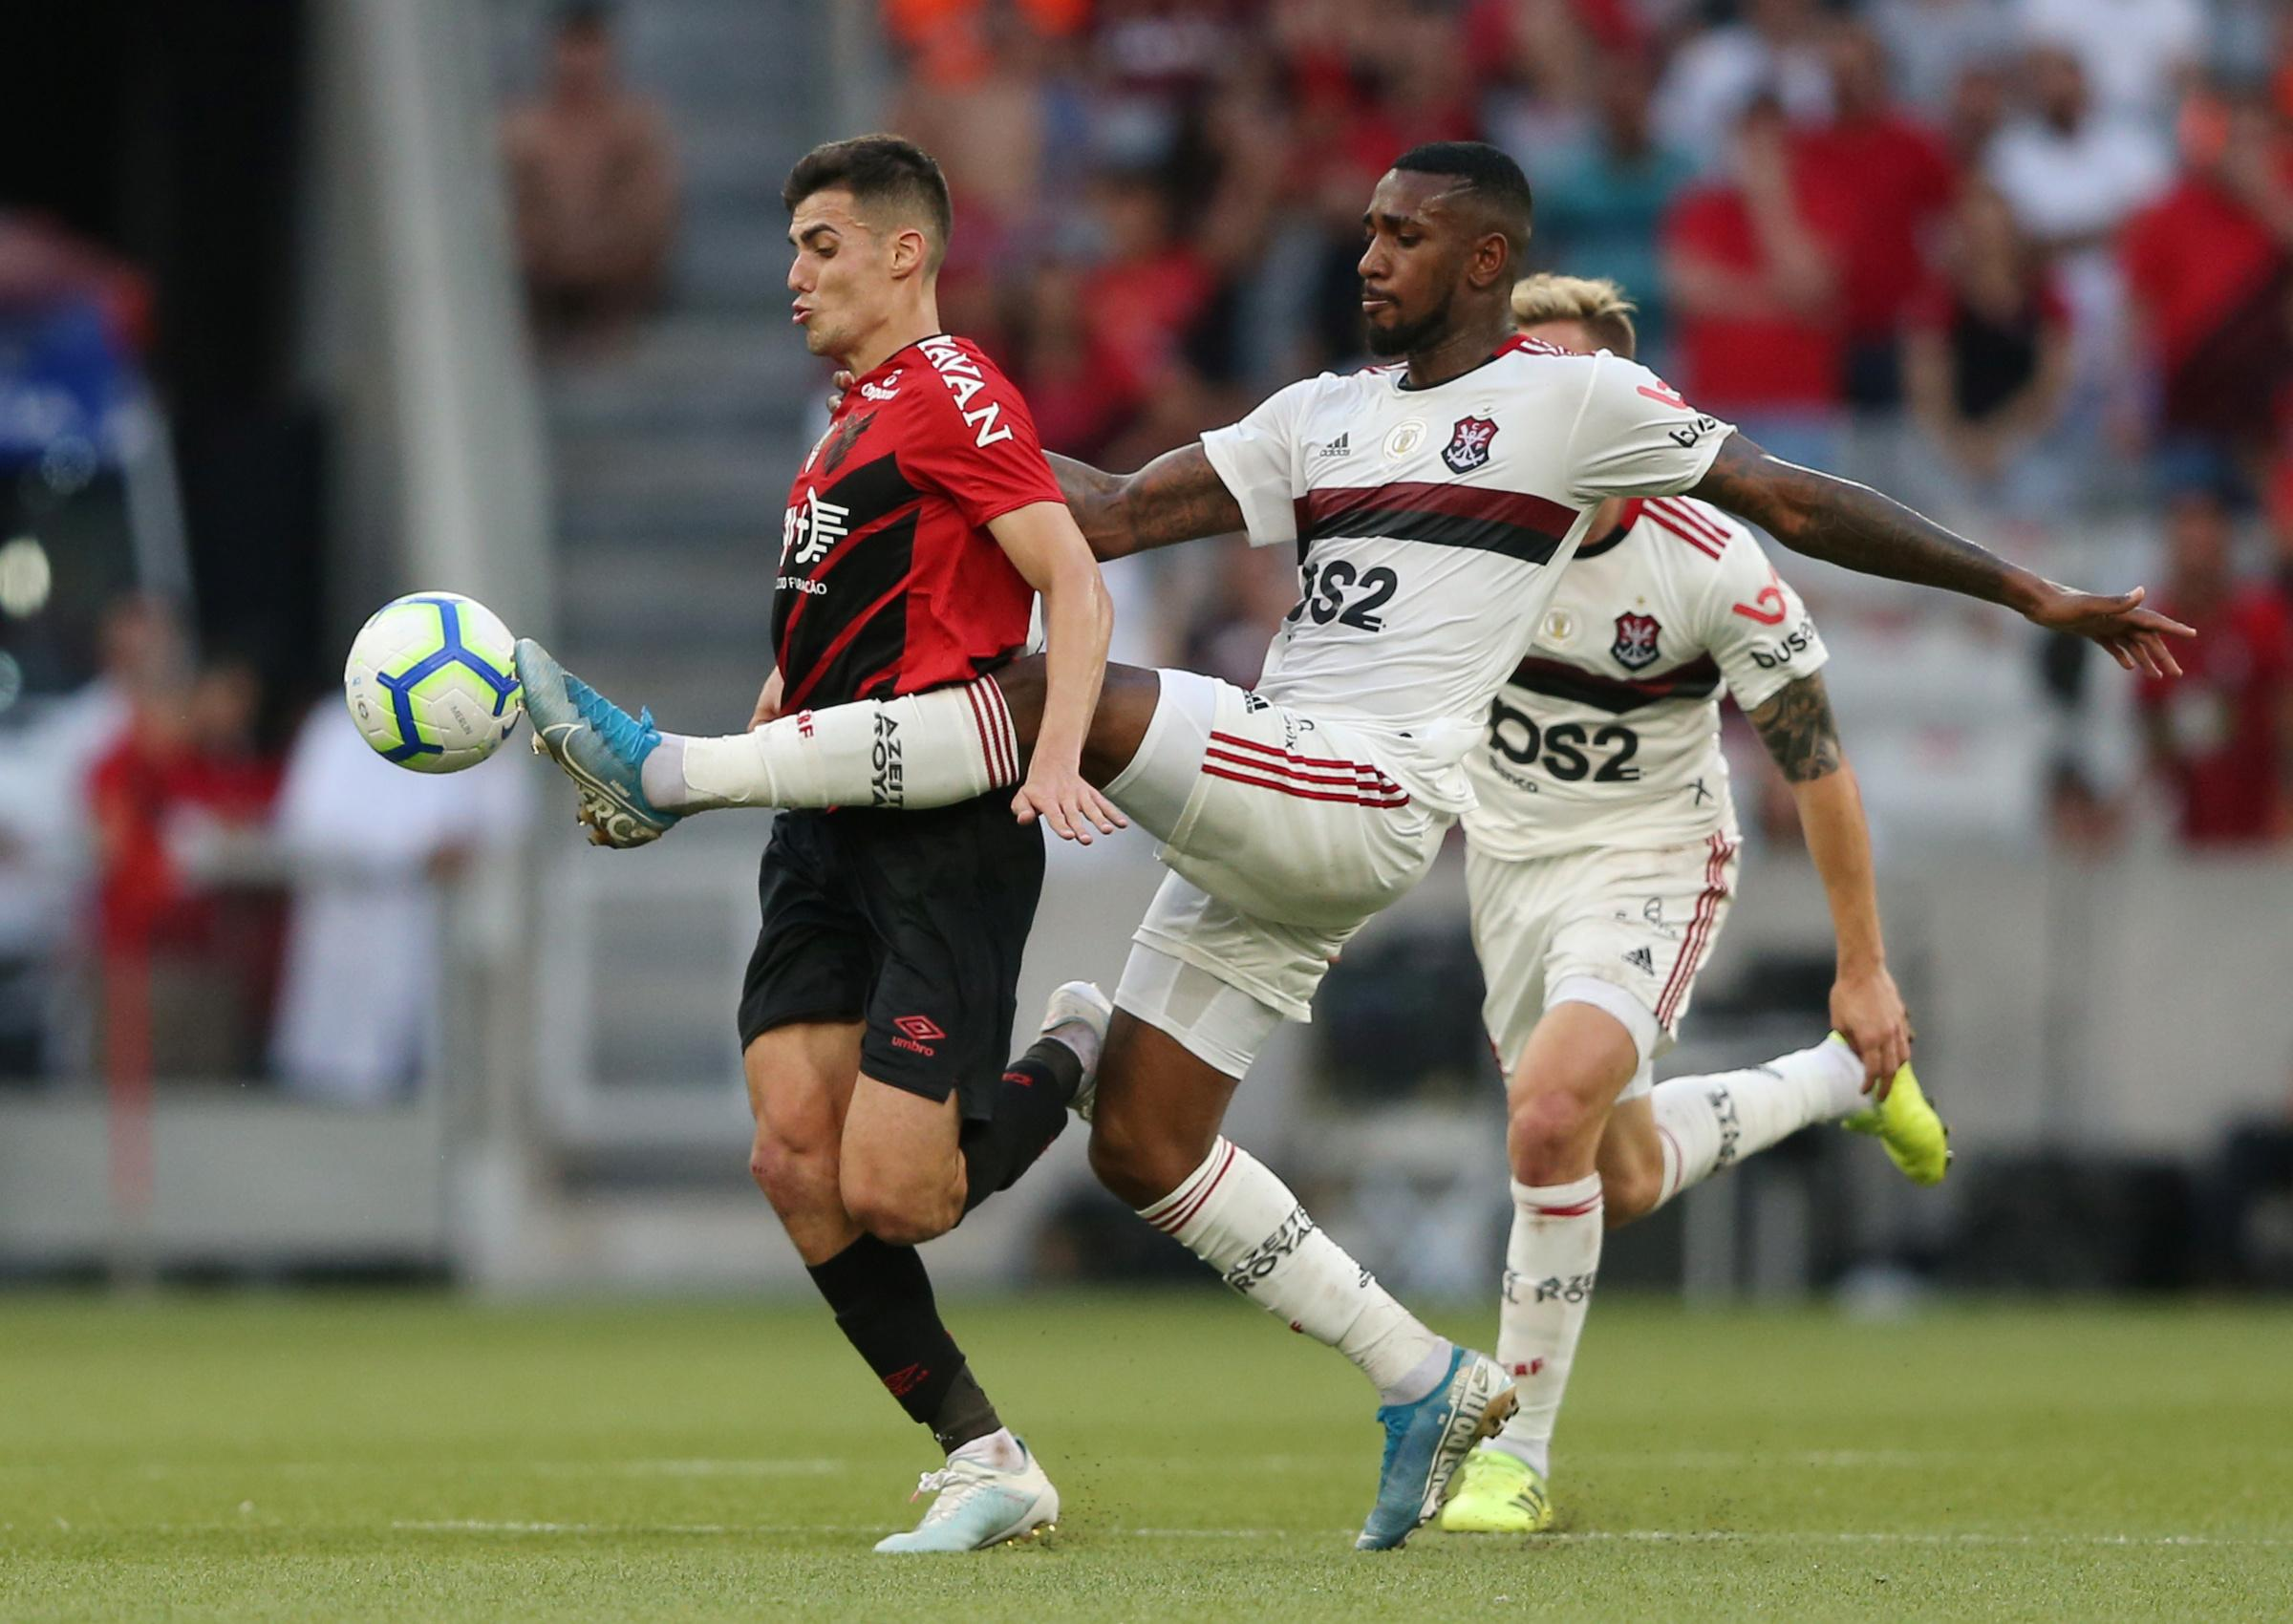 Flamengo win again to stay top in Brazil